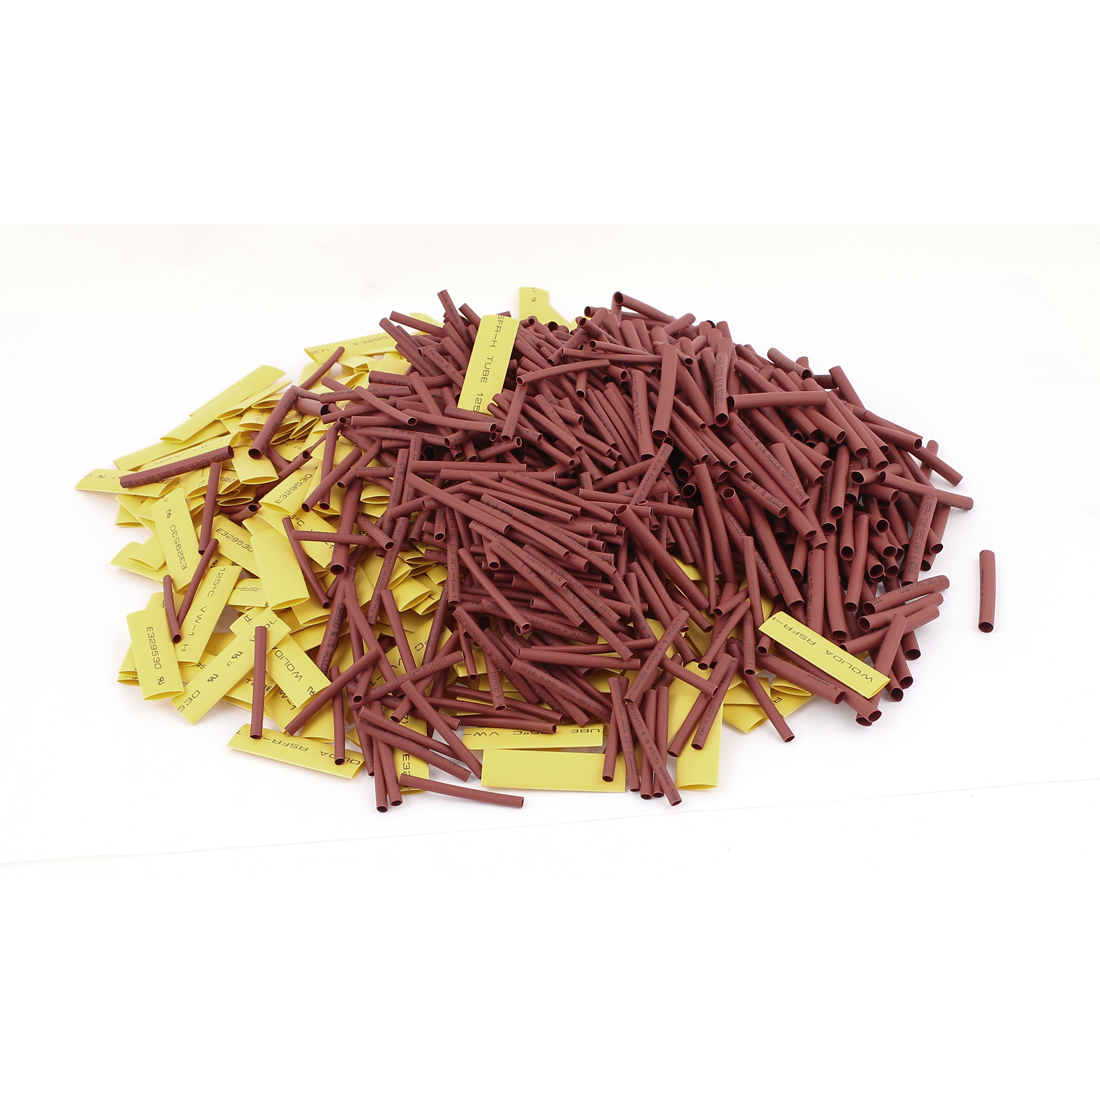 900Pcs 2mm/3.5mm/7mm Yellow Heat Shrink Tube Sleeving Wrap Wire Kit 2:1